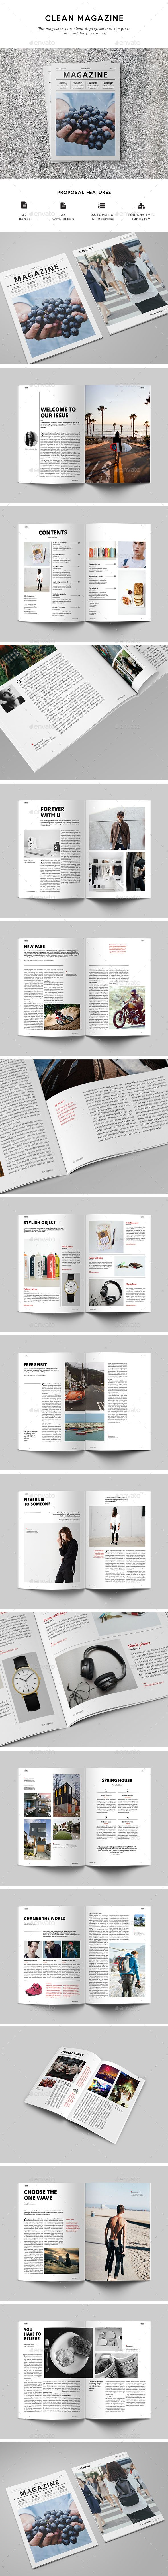 Multipurpose Magazine — InDesign INDD #modern #editorial • Available here → https://graphicriver.net/item/multipurpose-magazine/15682138?ref=pxcr